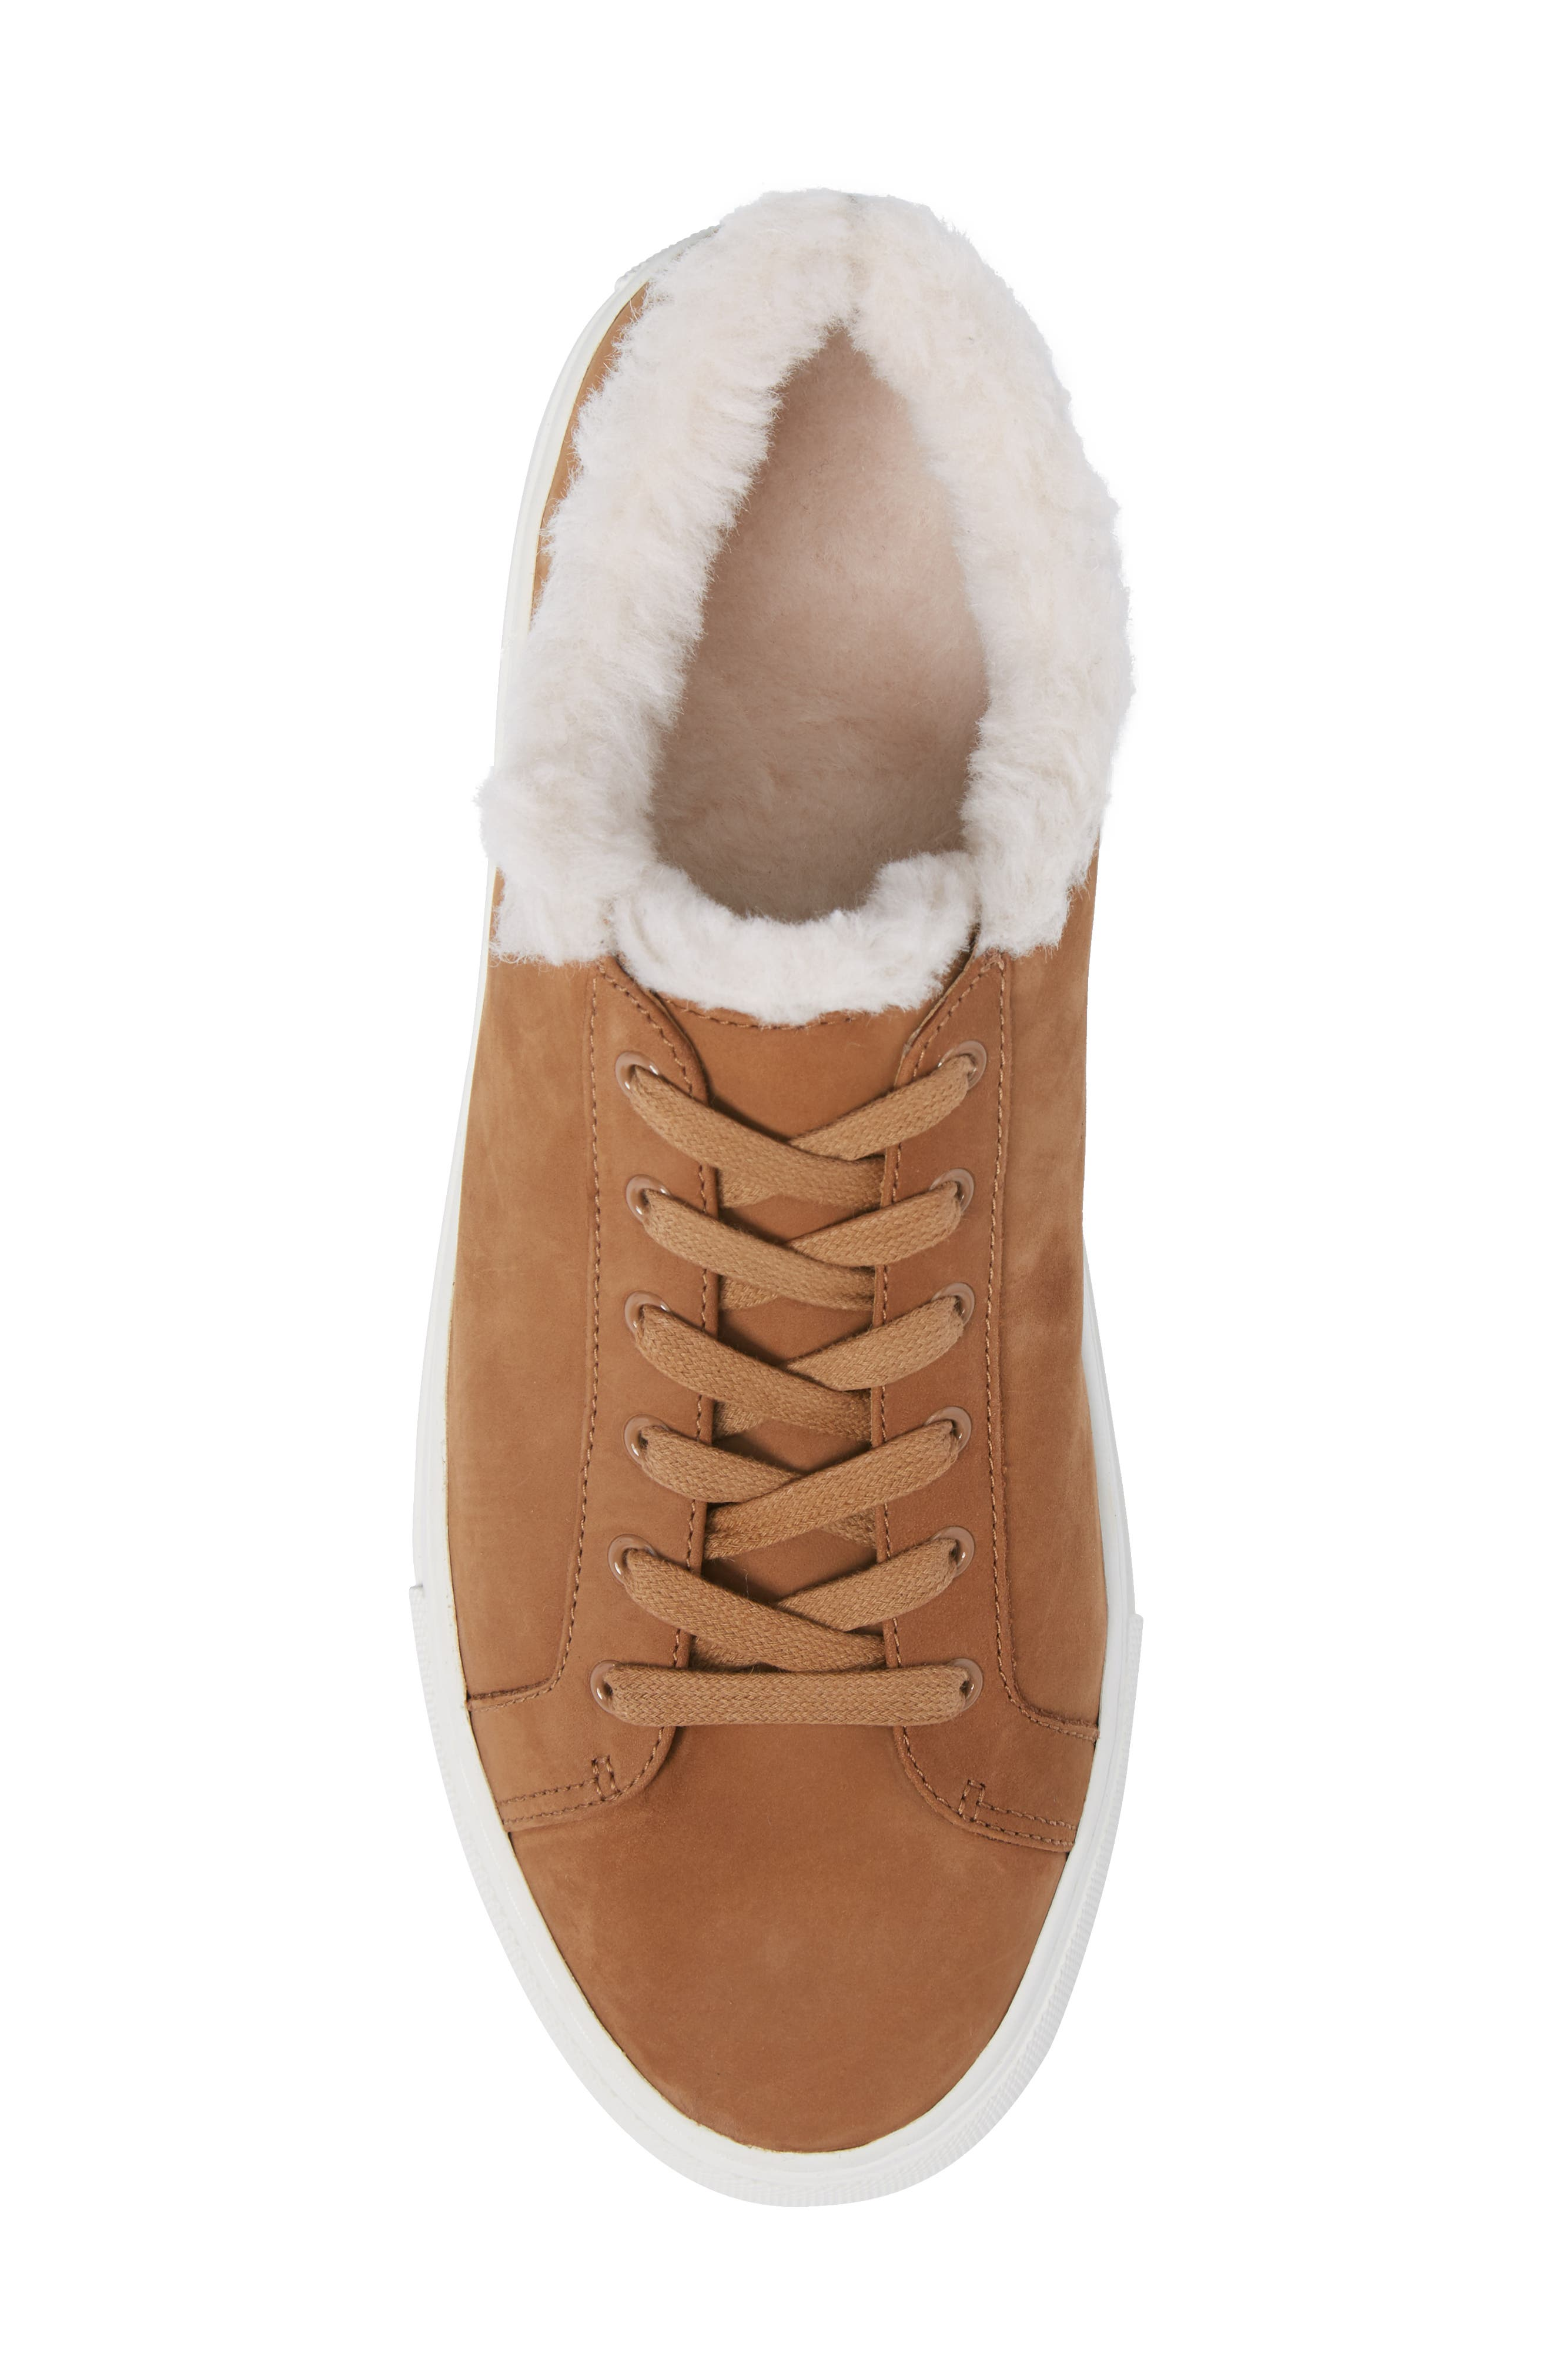 Lawrence Genuine Shearling Lined Sneaker,                             Alternate thumbnail 10, color,